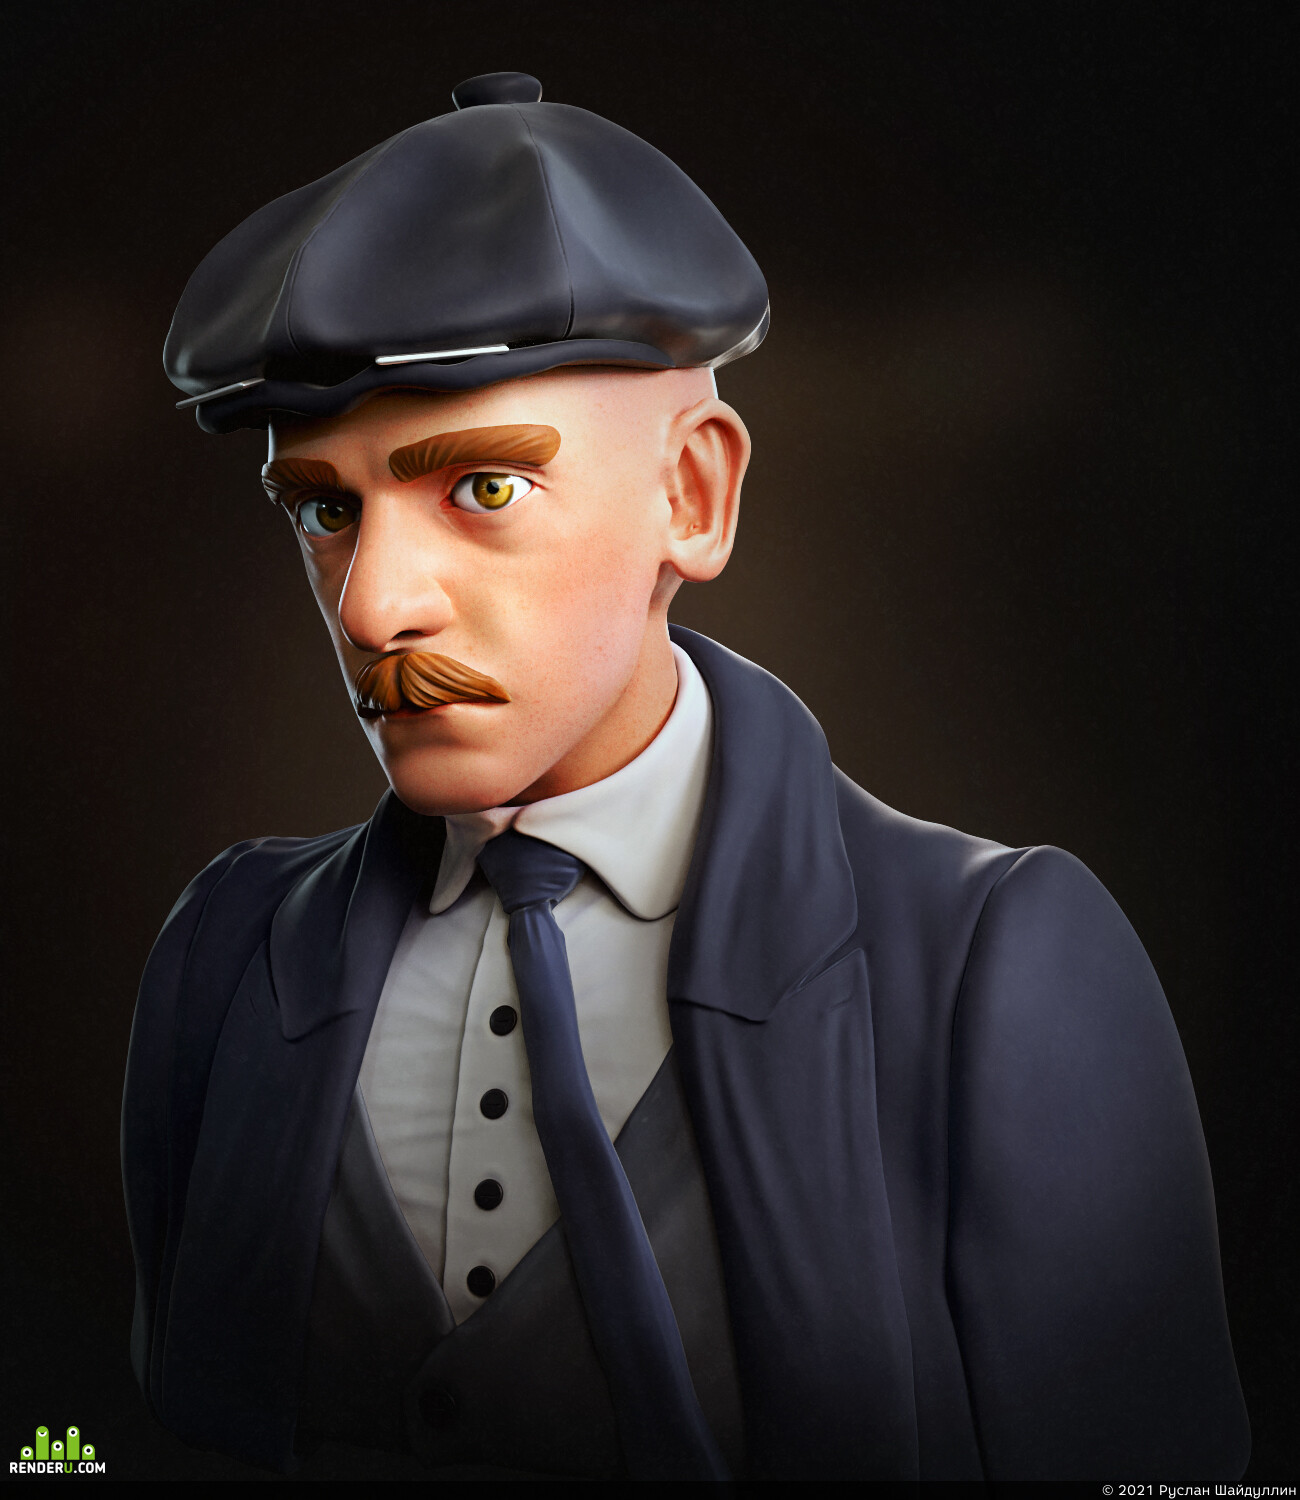 zbrush, 3d characher, Character Design, stylized model, stylized character, Stylized, peaky blinders, Adobe Photoshop, Digital Clothes